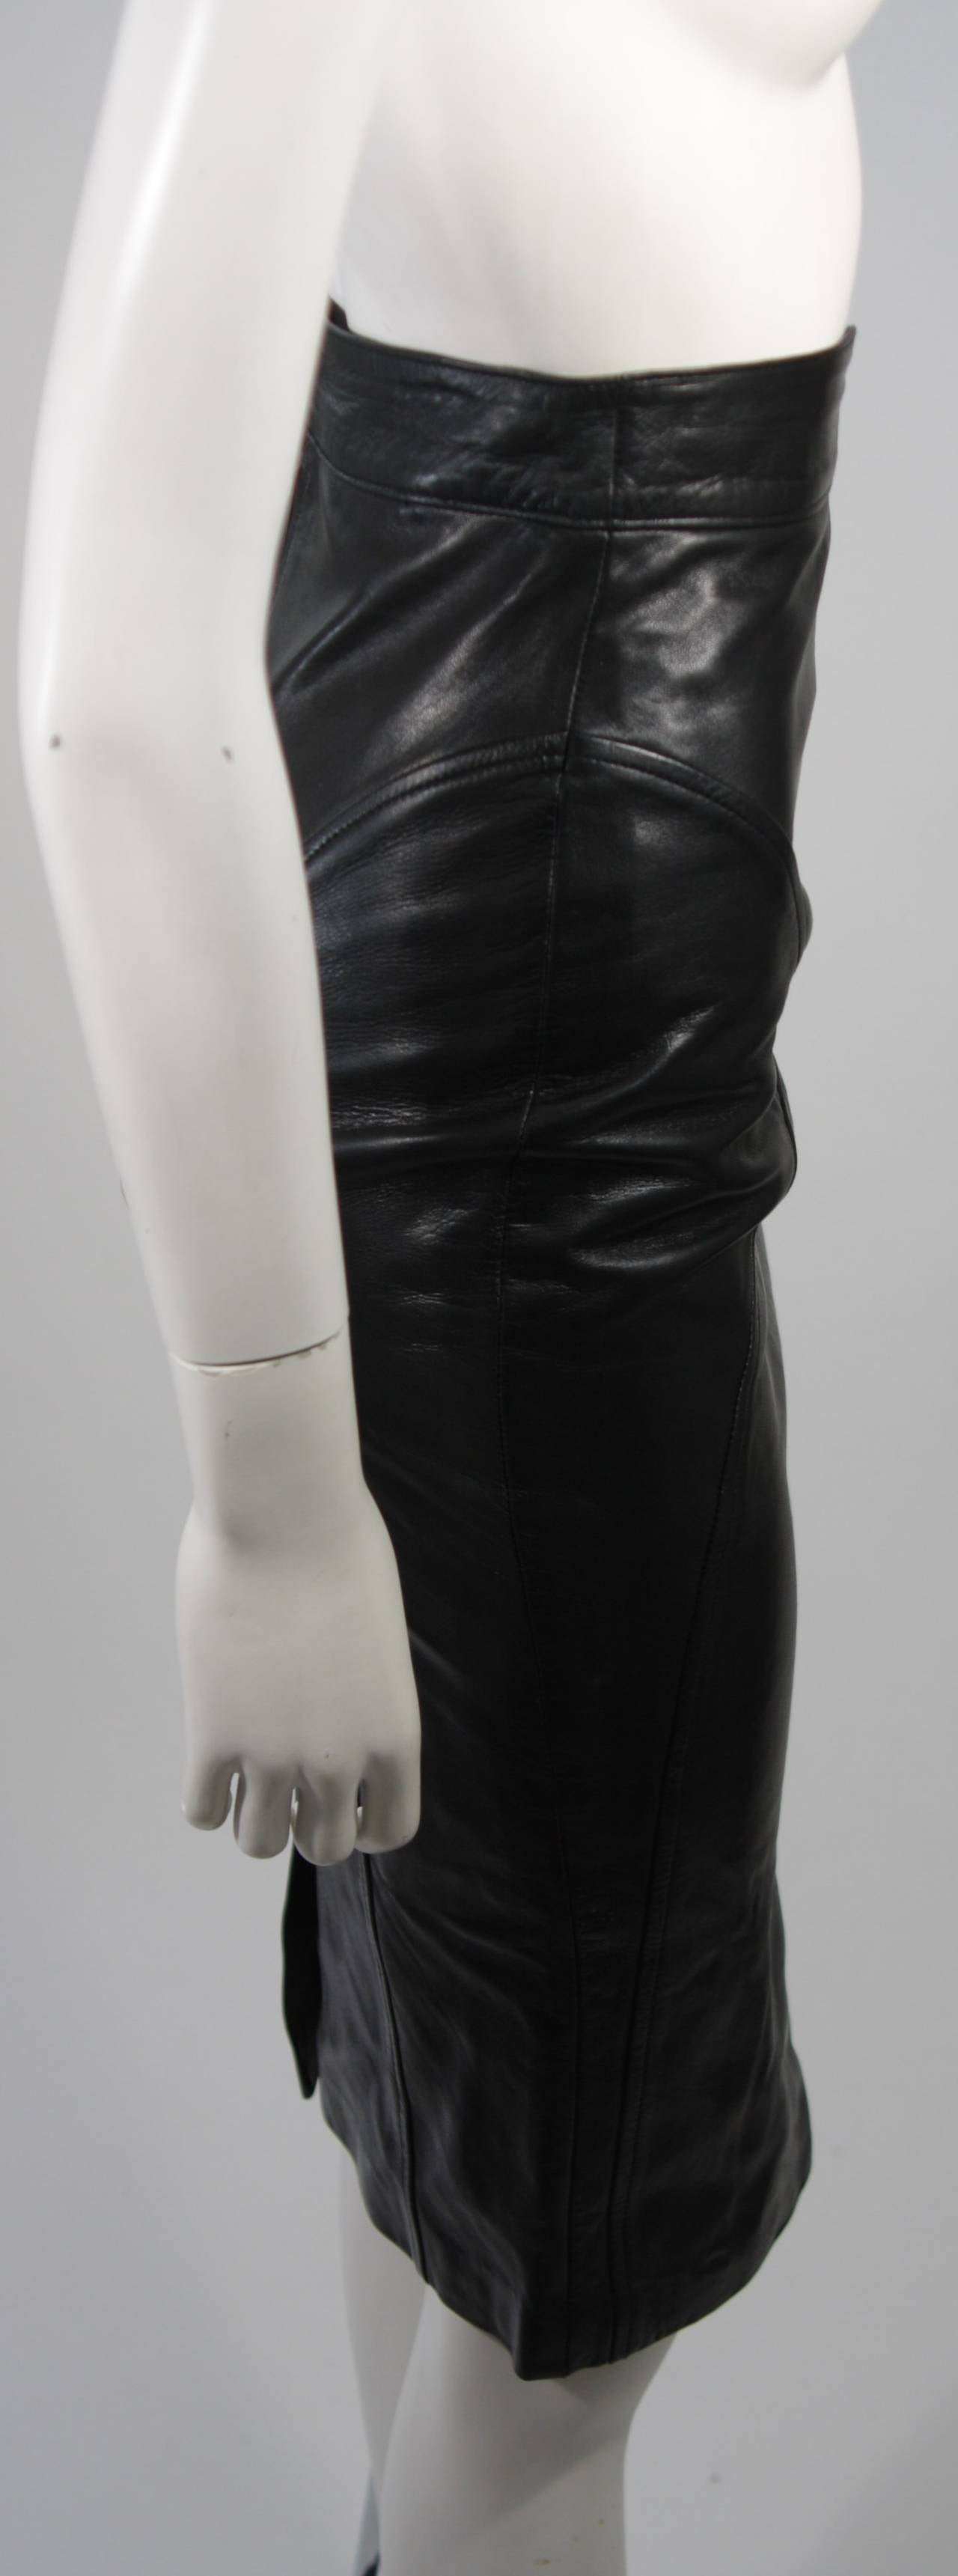 Jean Claude Jitrois Black Leather Skirt Size Extra Small 7